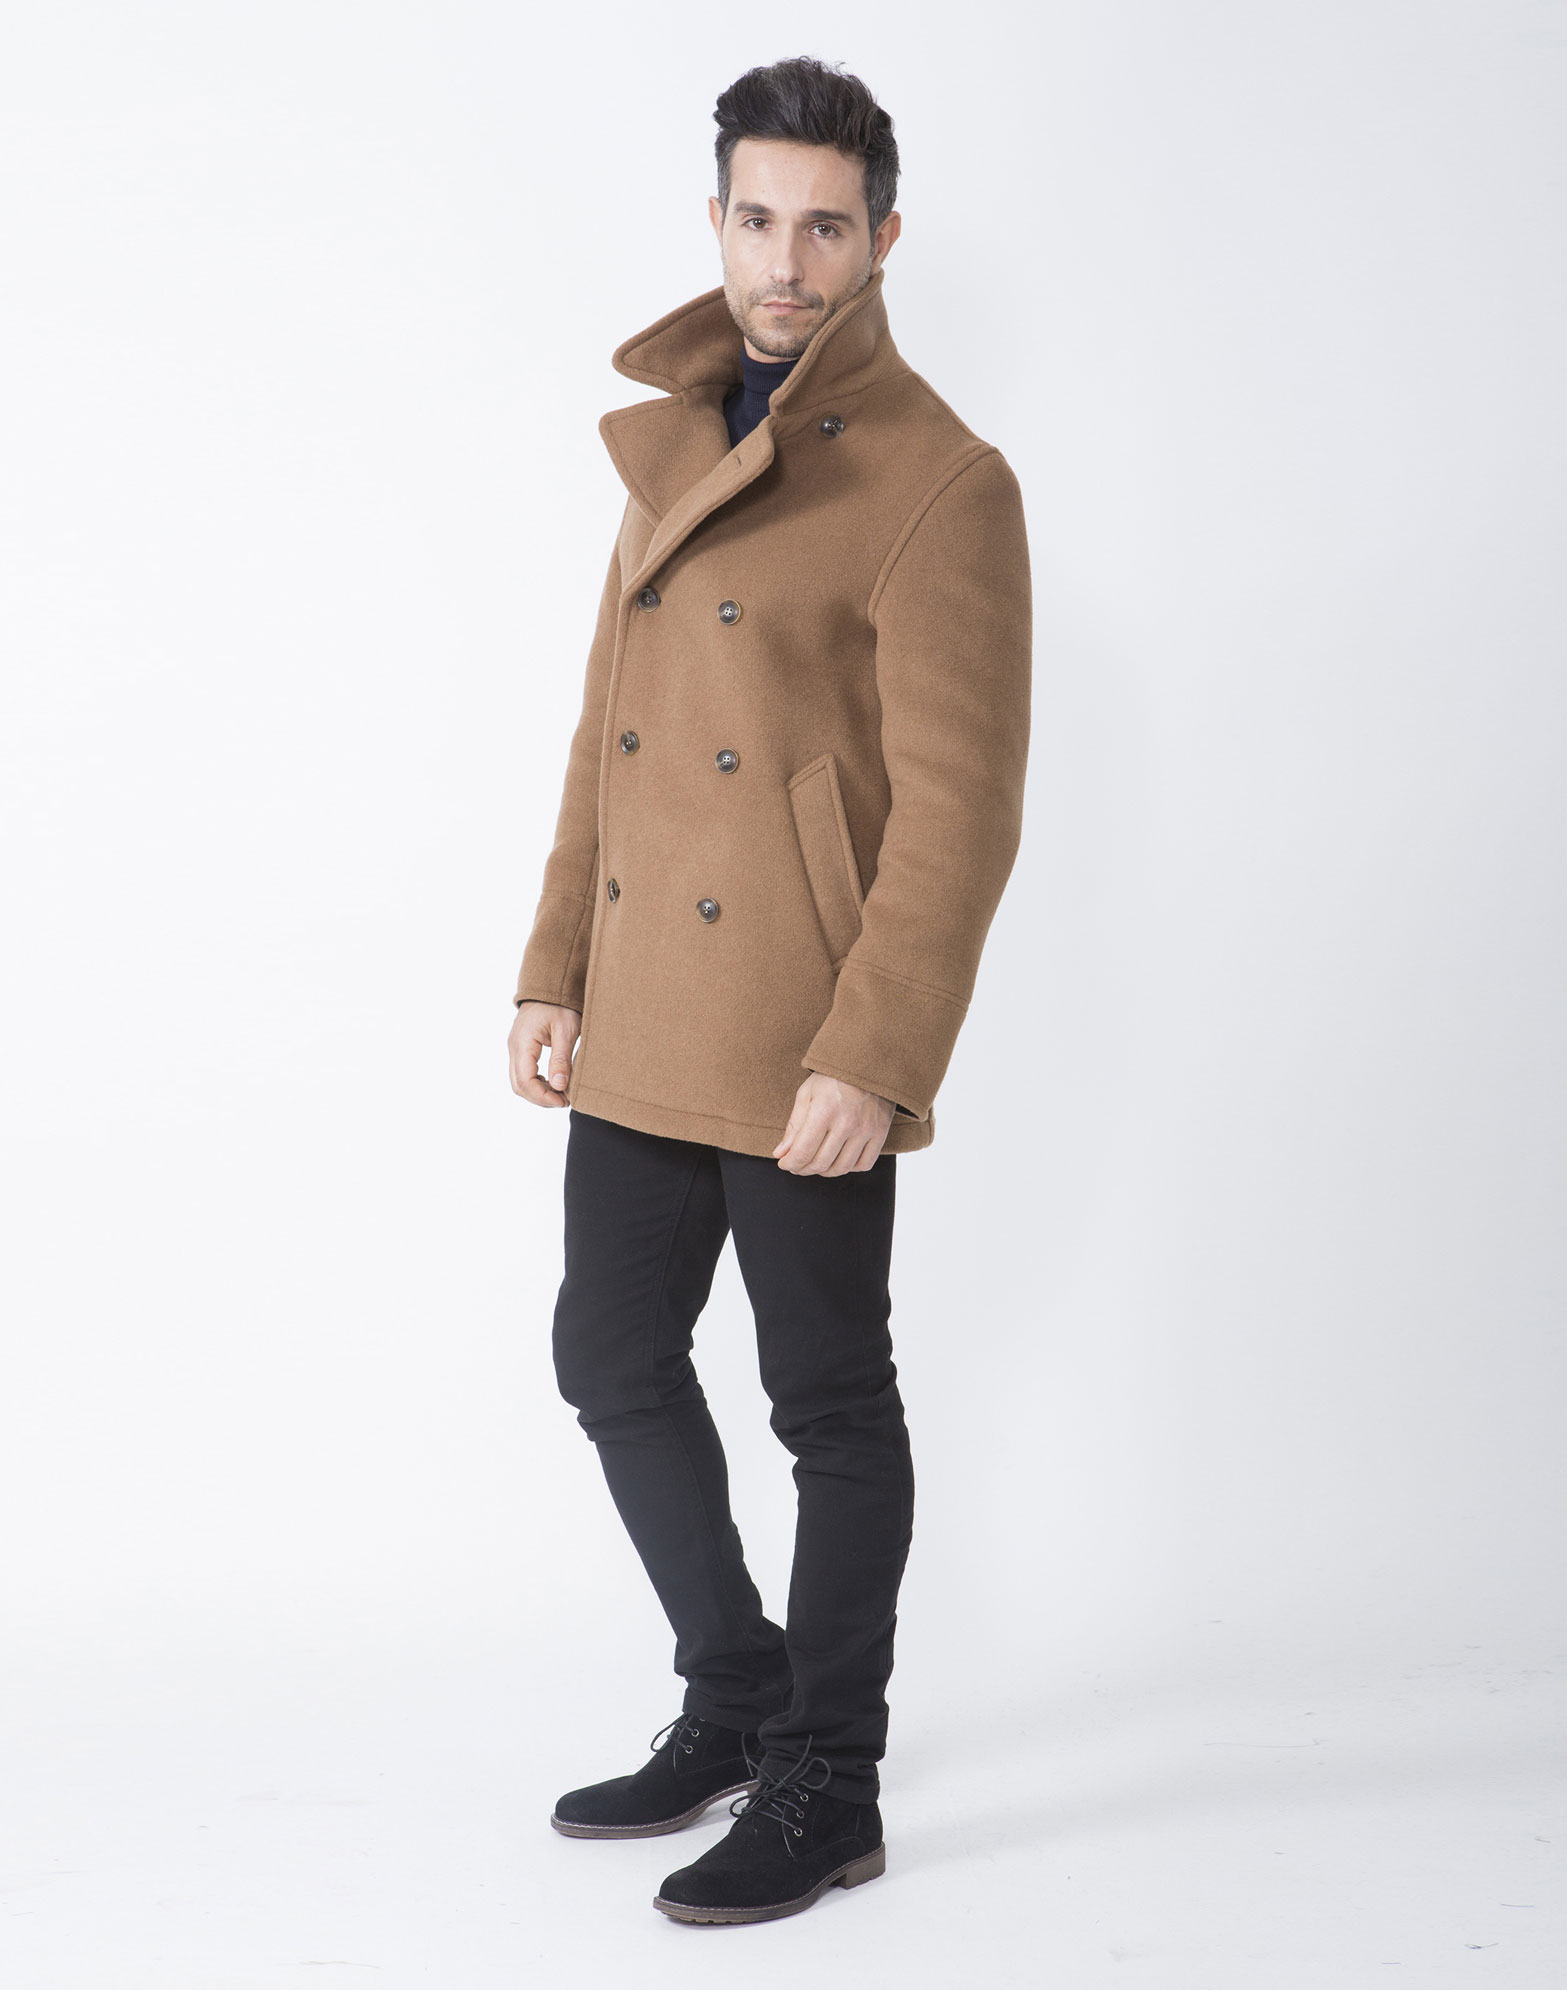 Find great deals on eBay for Mens Camel Peacoat in Men's Coats And Jackets. Shop with confidence. Find great deals on eBay for Mens Camel Peacoat in Men's Coats And Jackets. Brand new with tags very nice ciproprescription.ga brown color. $ NWT Michael Kors Mens Wool Blend Double Breasted Peacoat Camel Sz M / XXL. $ Buy It Now.